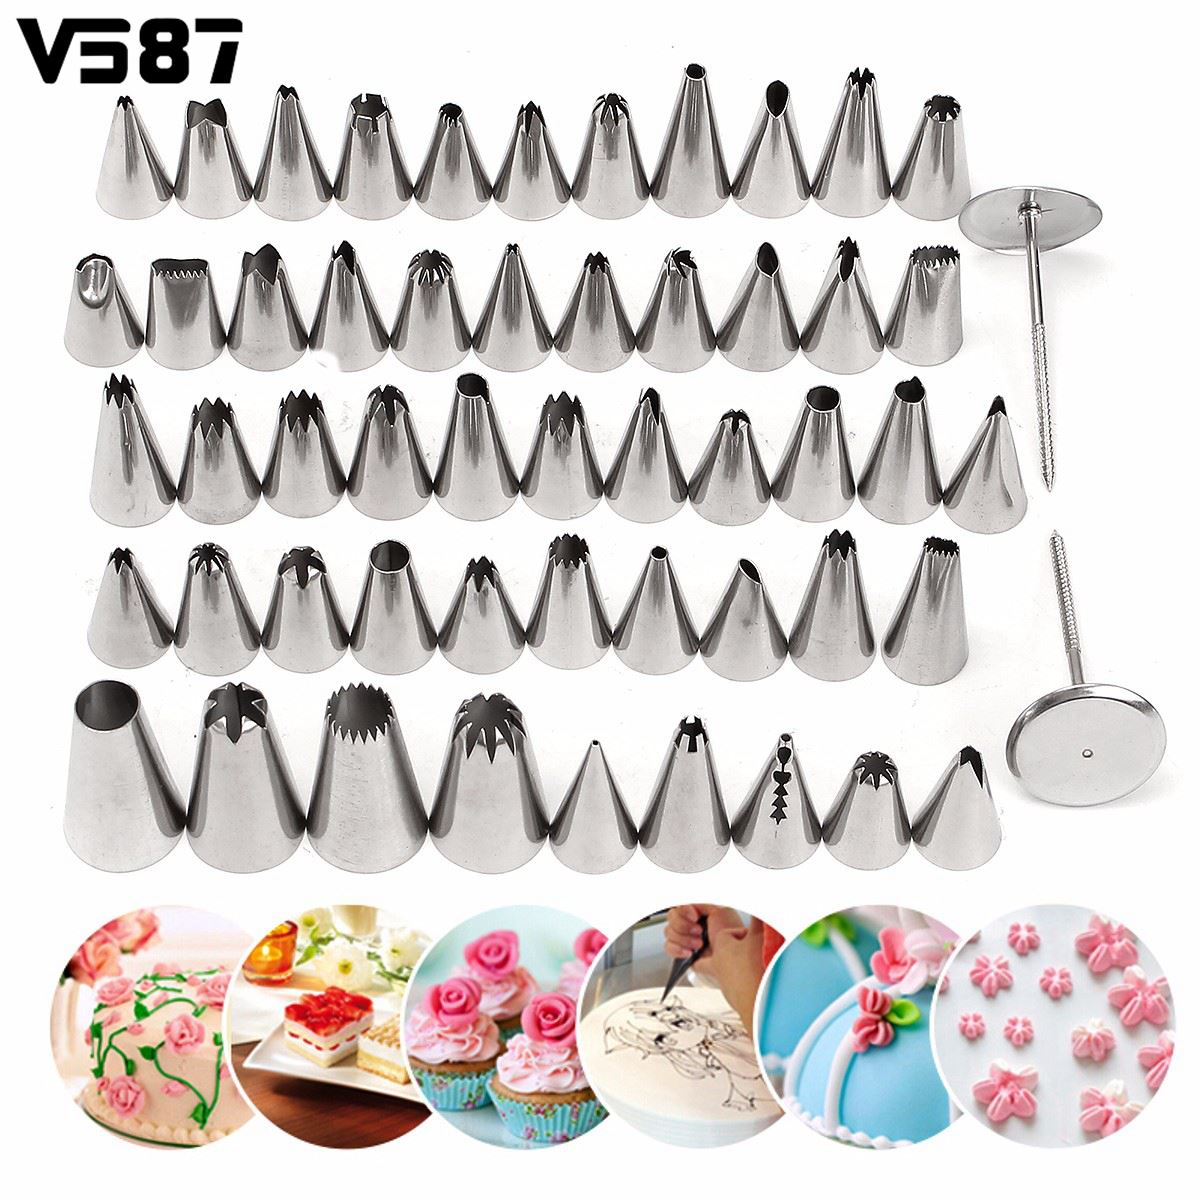 52Pcs lot Stainless Steel Icing Piping Nozzles Pastry Fondant Cake Decorating Sugarcraft Set kitchen Tools Confectionery